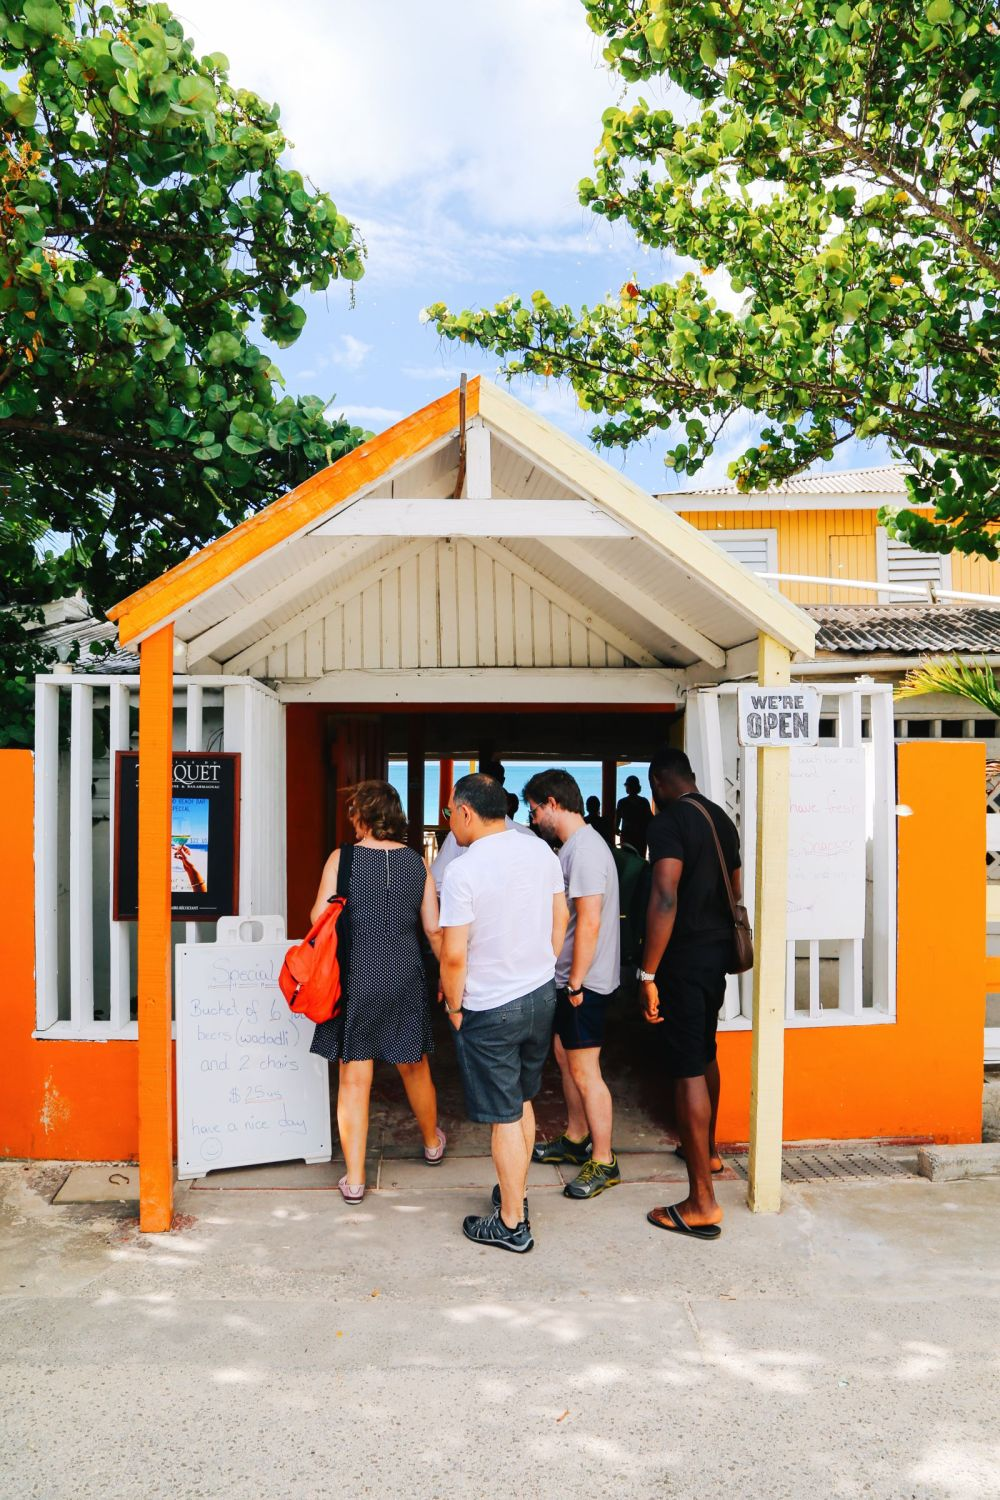 Exploring The Caribbean Island Of Antigua By Land - Part 2 (25)